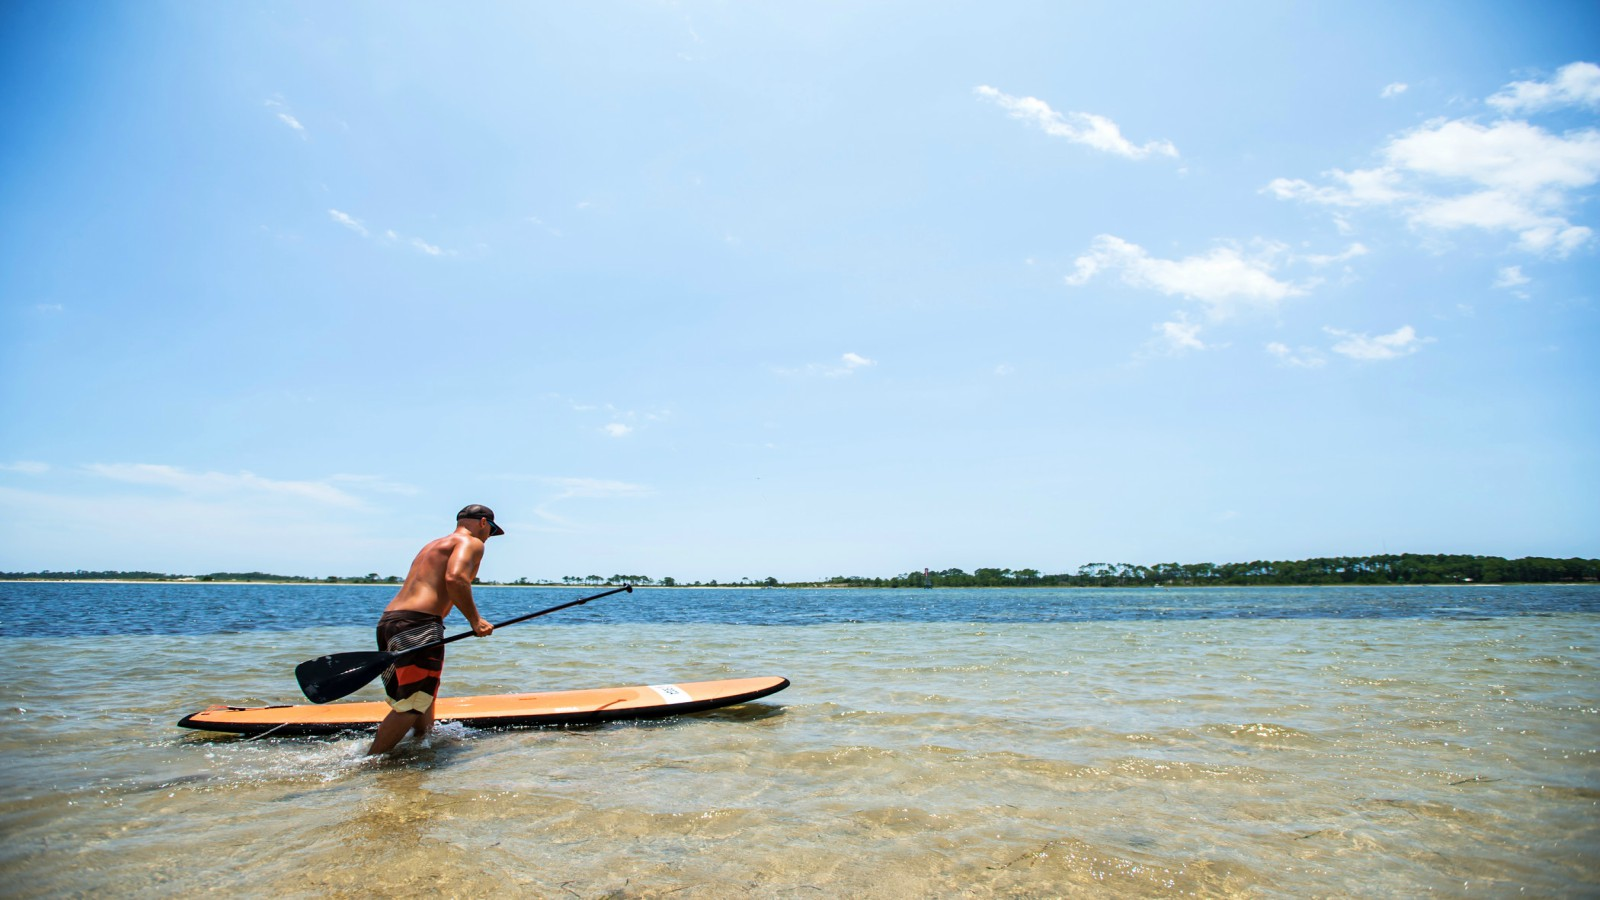 Sheraton Bay Point Resort - Things To Do